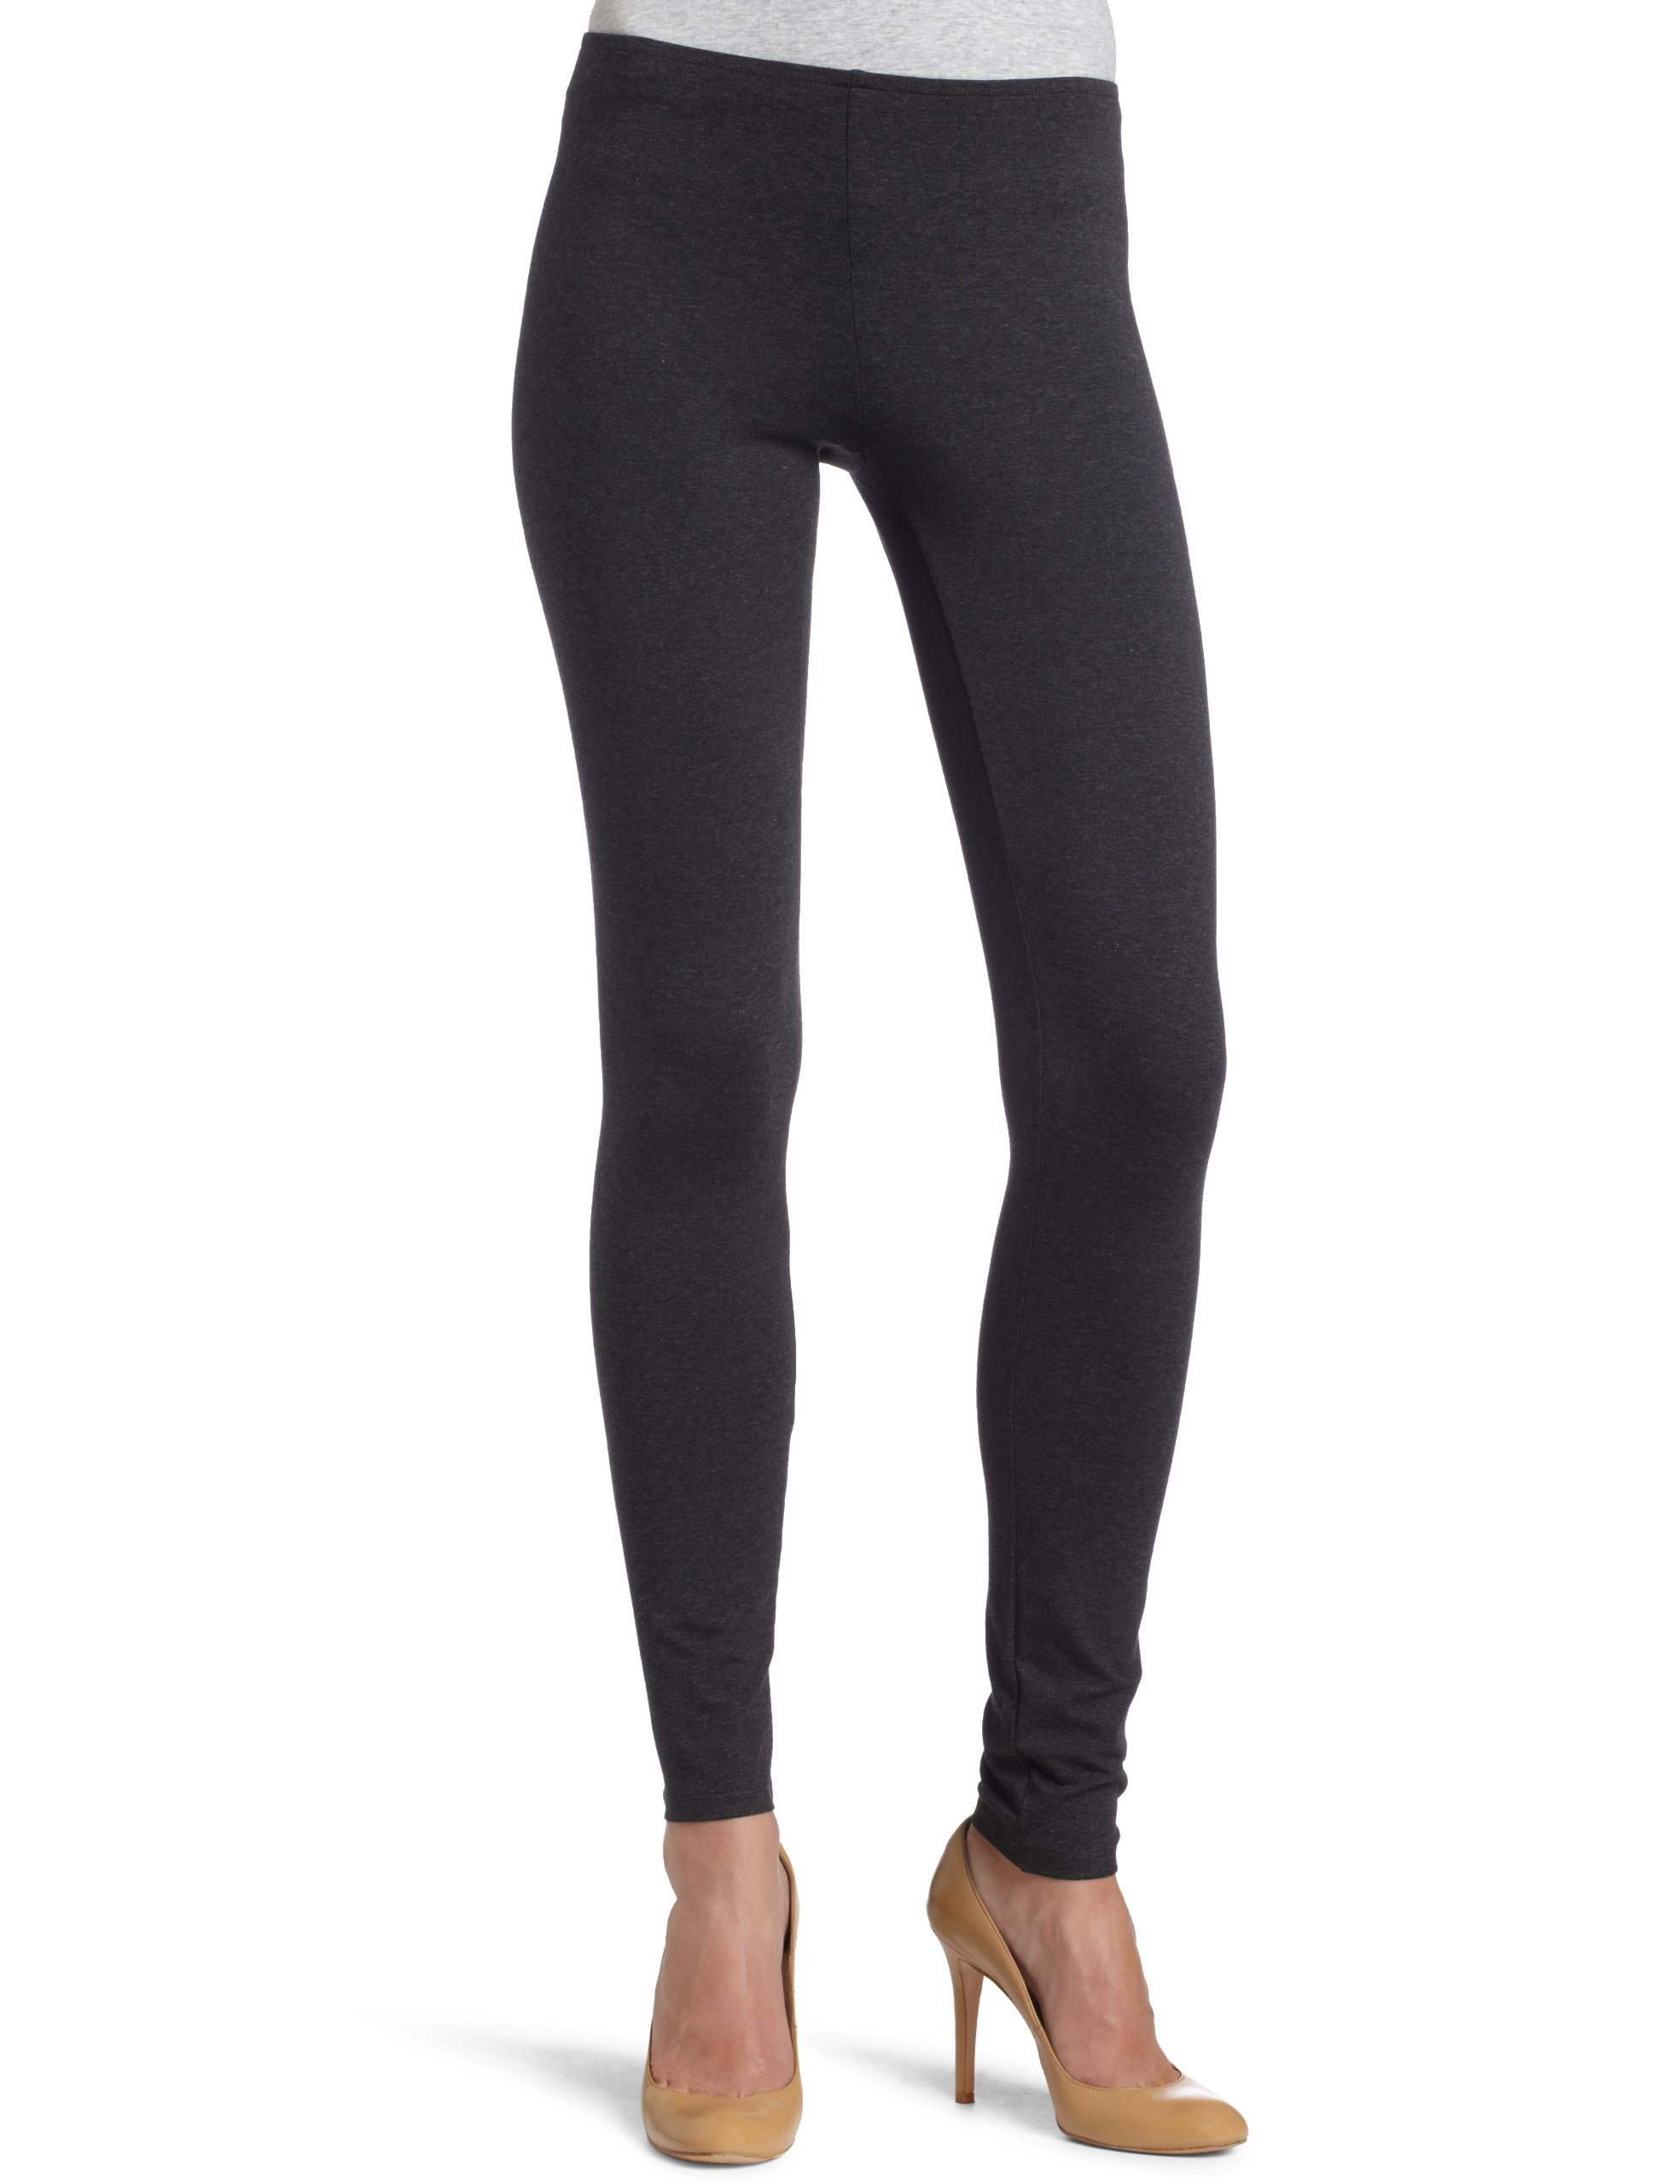 Only Hearts Women's So Fine Legging - 20078,Carbon,Large